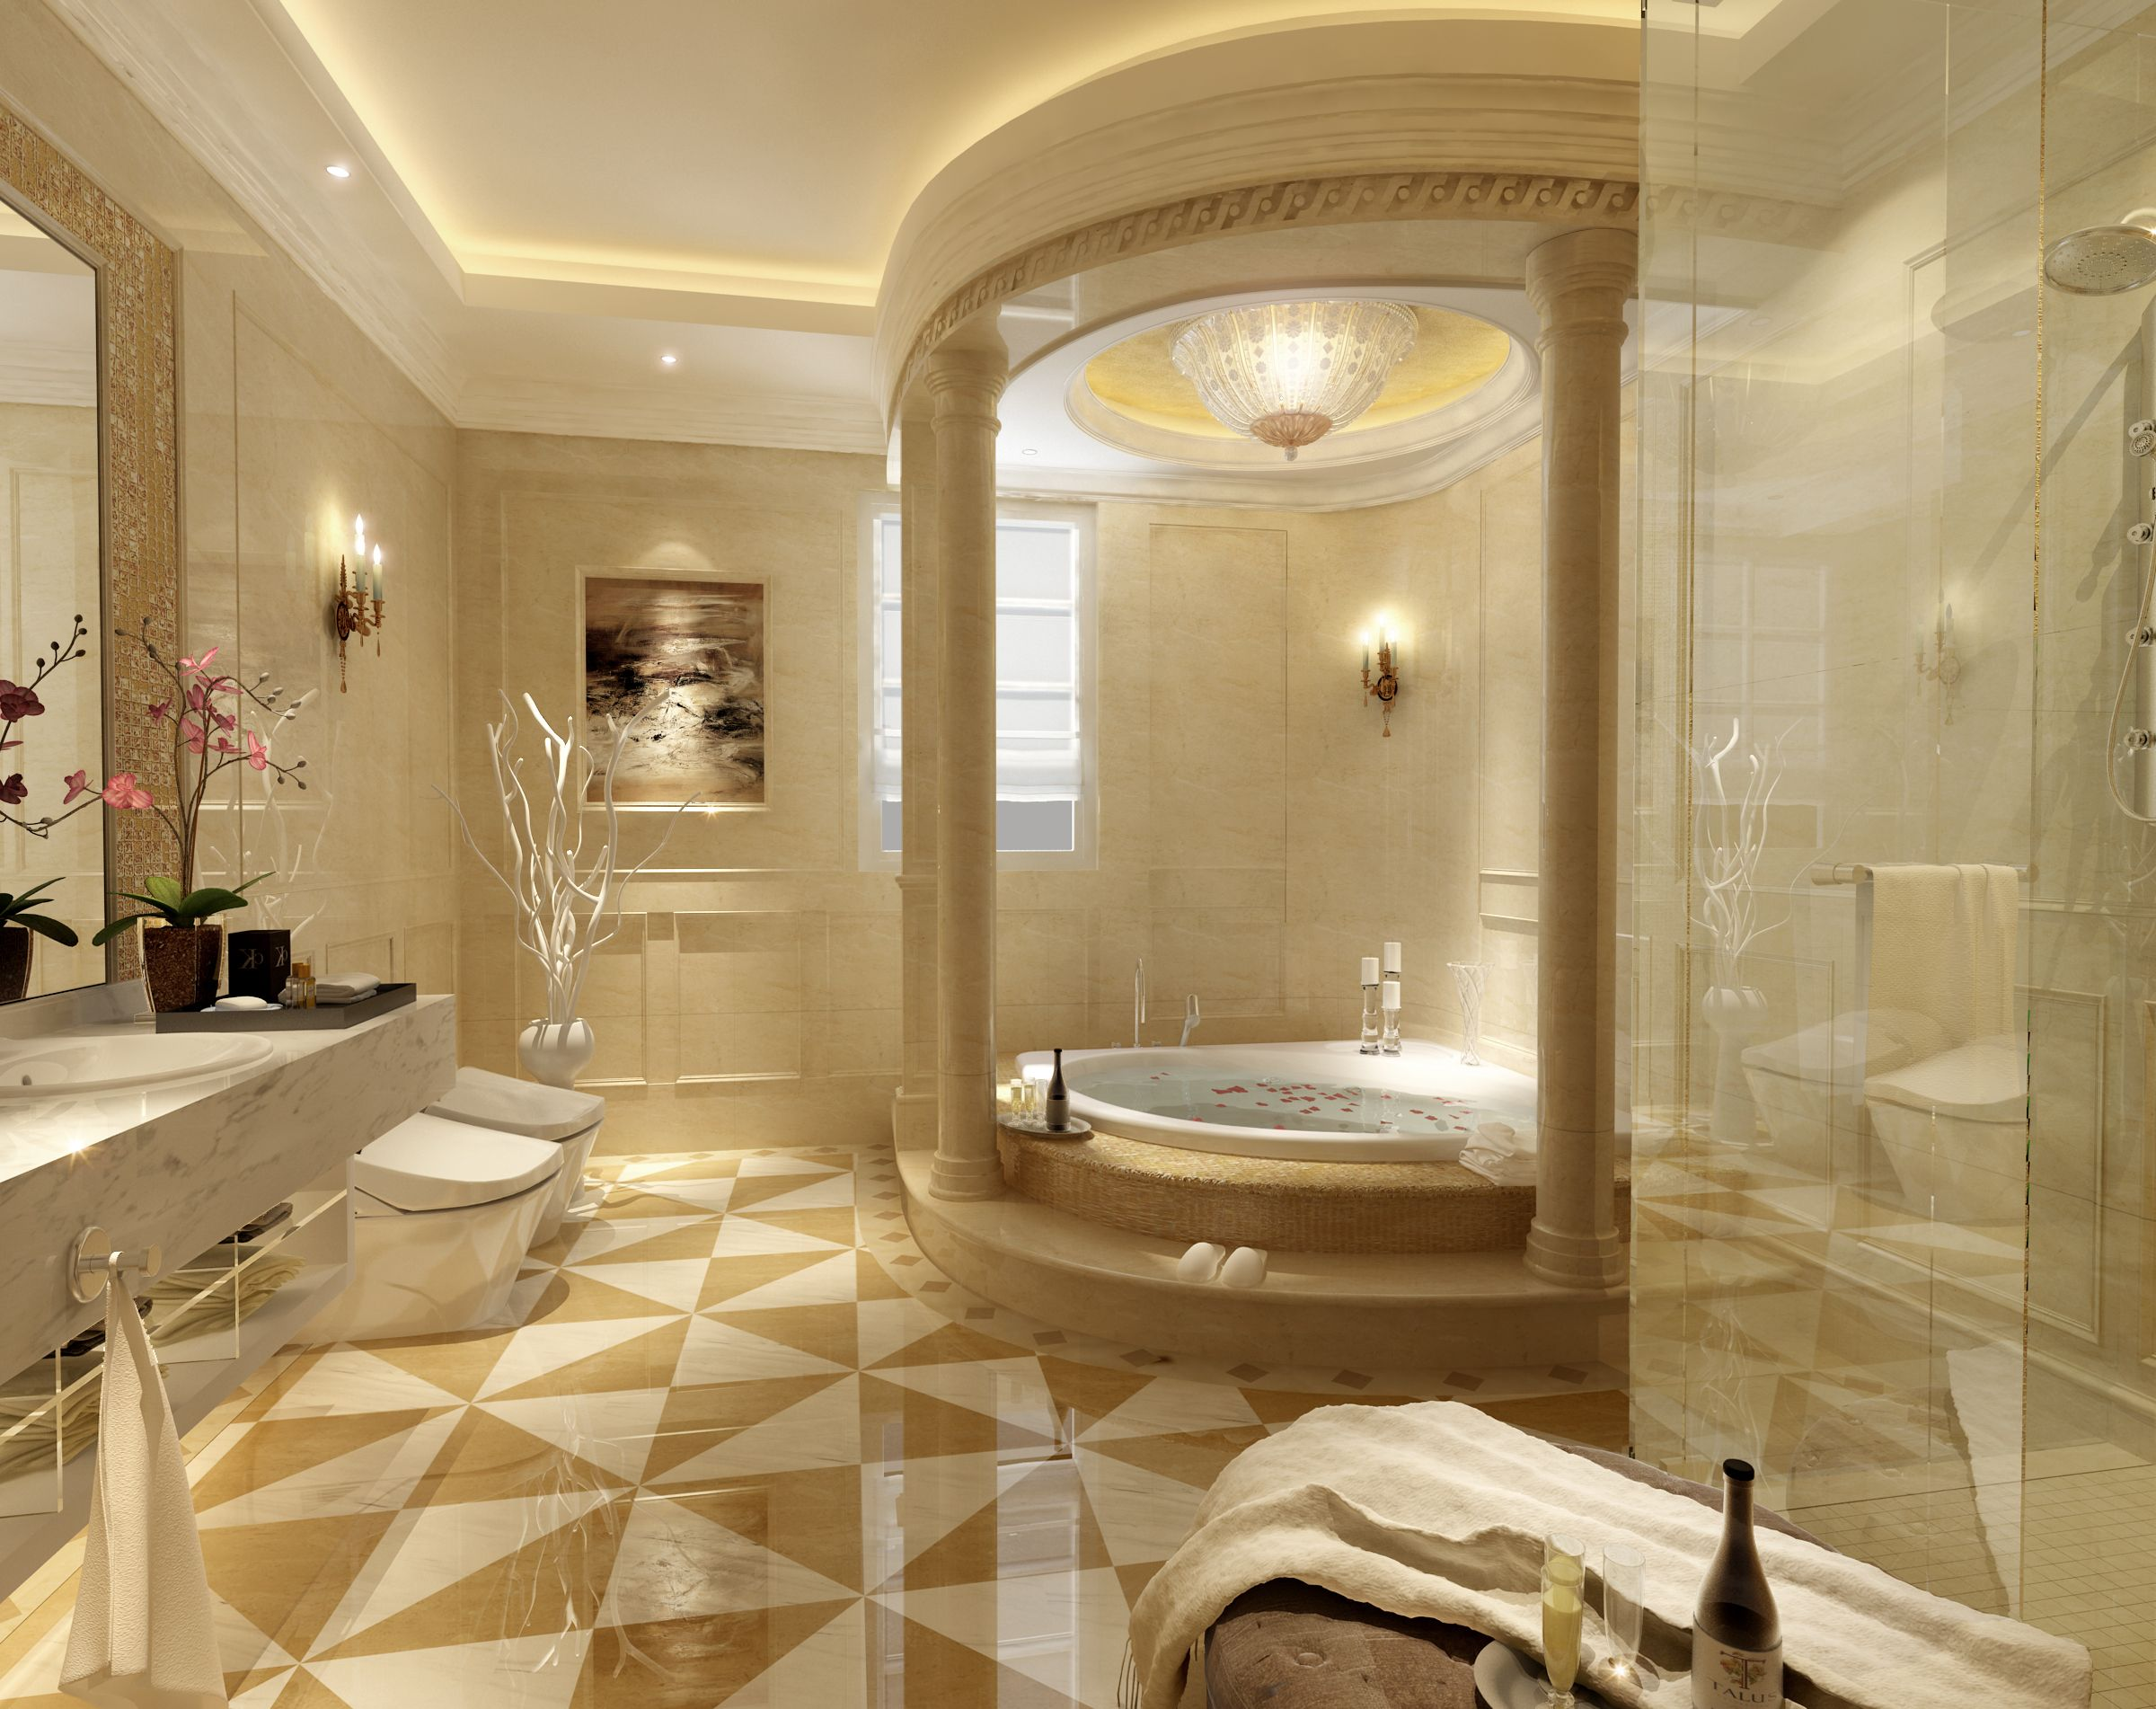 24 Stunning Luxury Bathroom Ideas For His And Hers: 55 Amazing Luxury Bathroom Designs